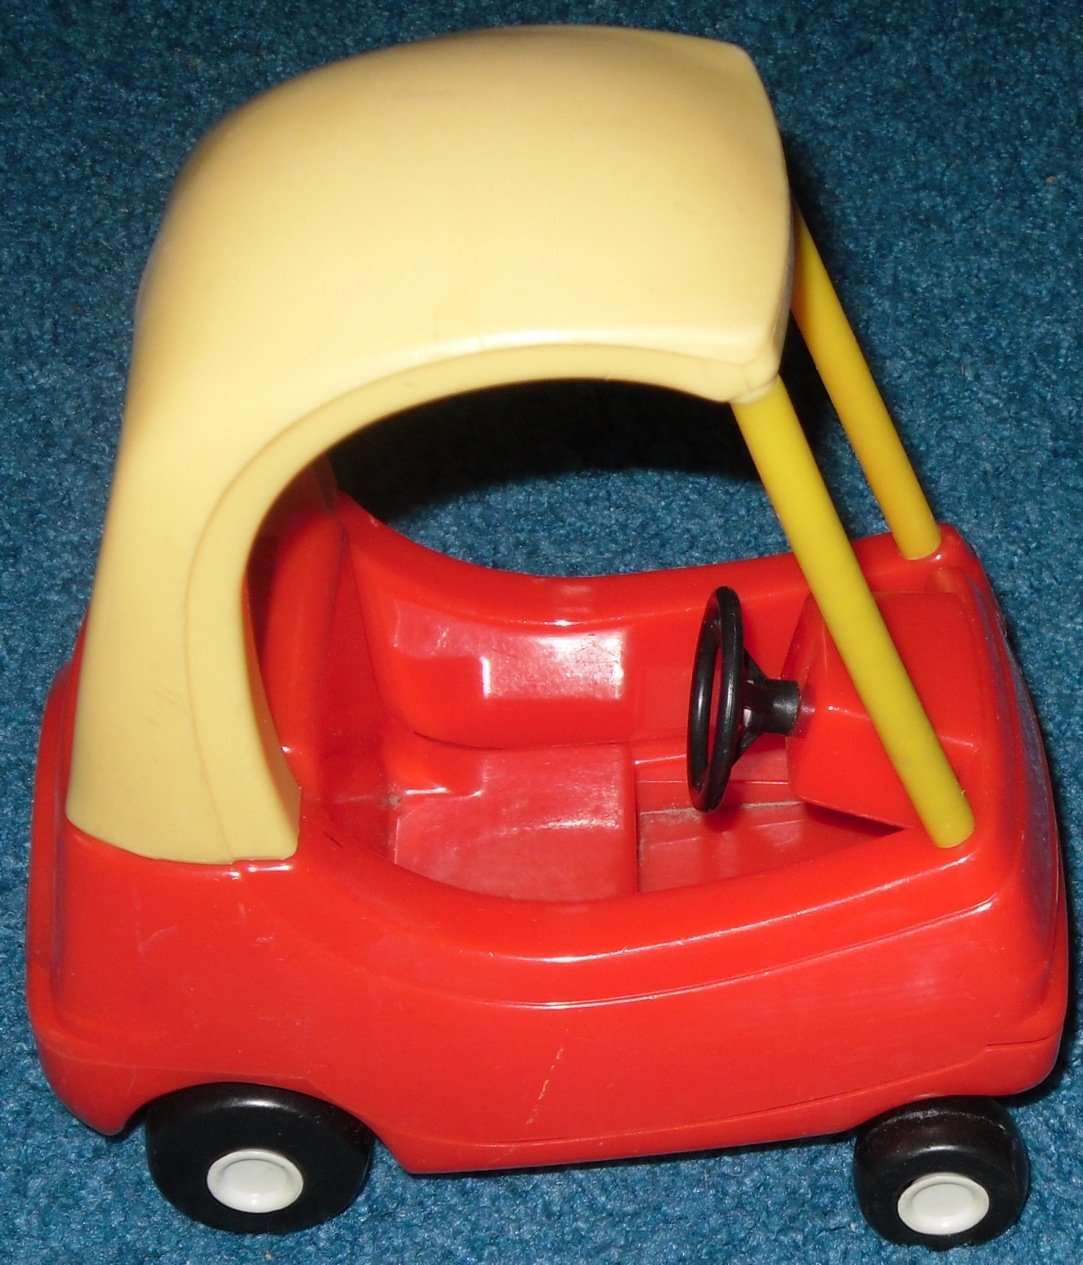 Little Tykes Doll House Cozy Coupe Car